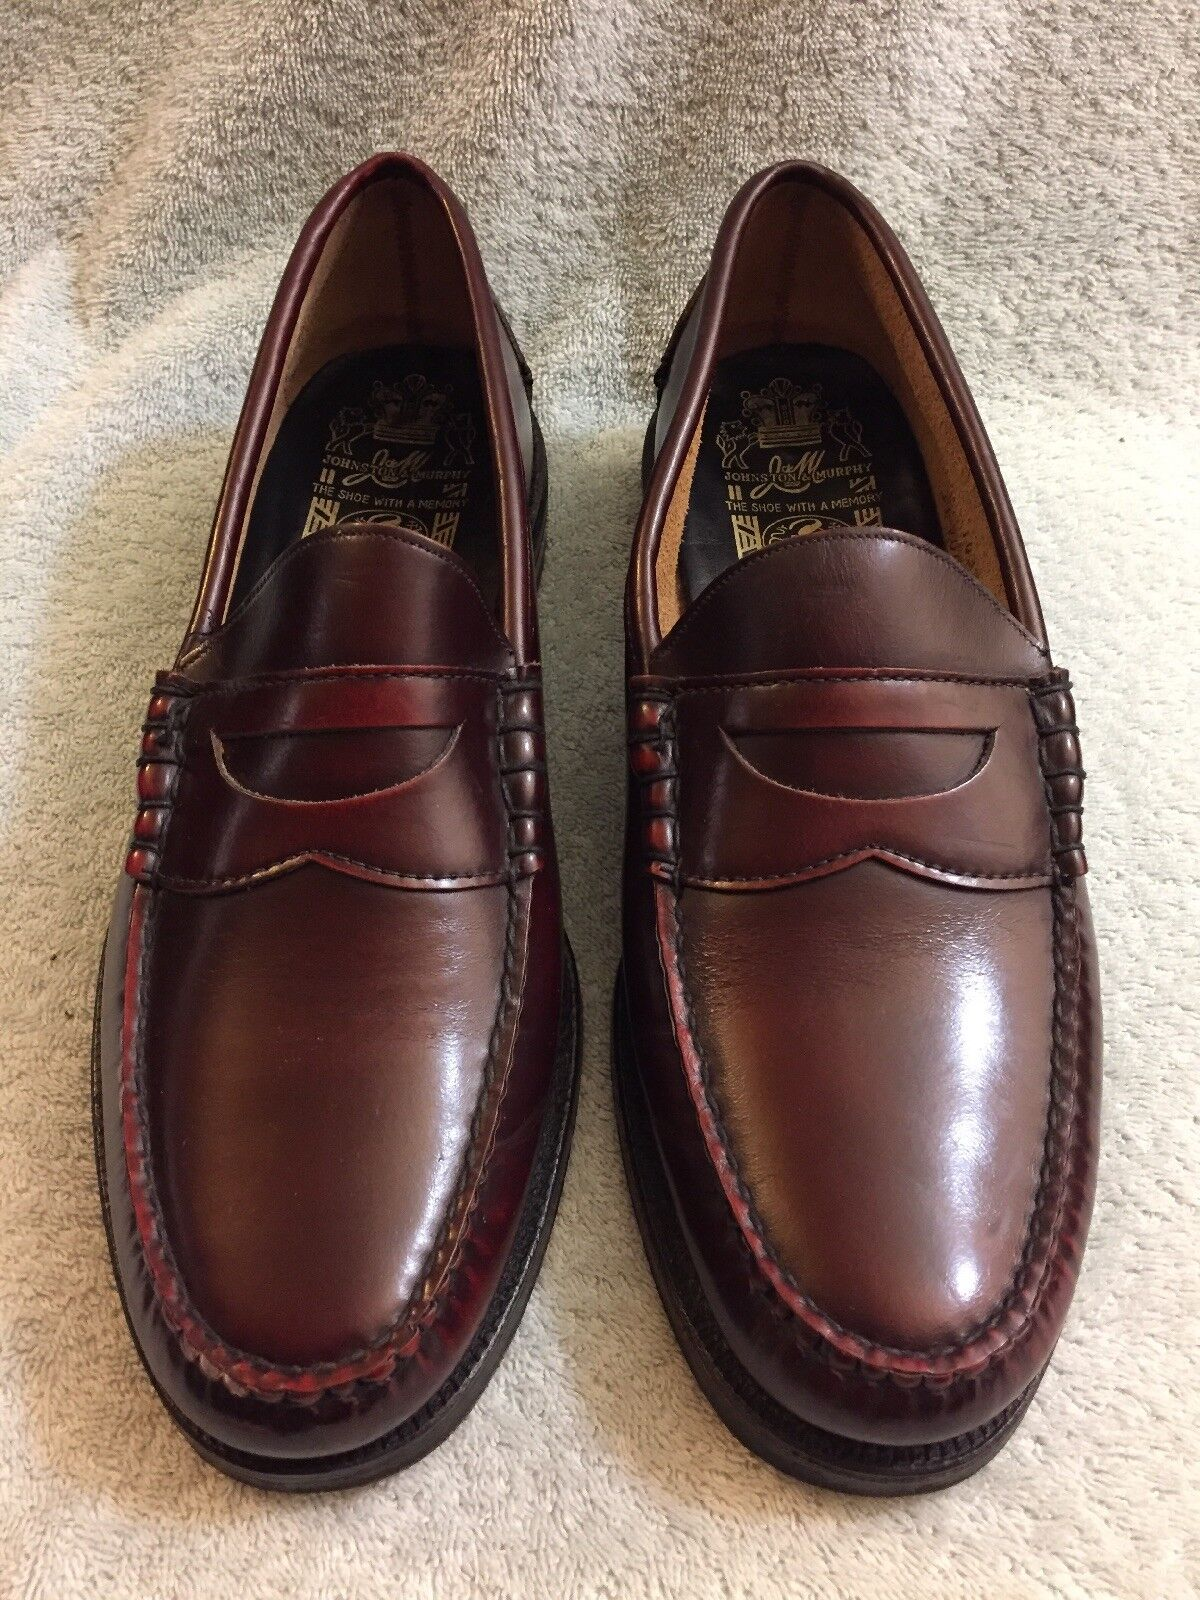 Johnston Murphy Aristocraft Penny Loafers Burgundy Moc Toe shoes USA Men's 10D B